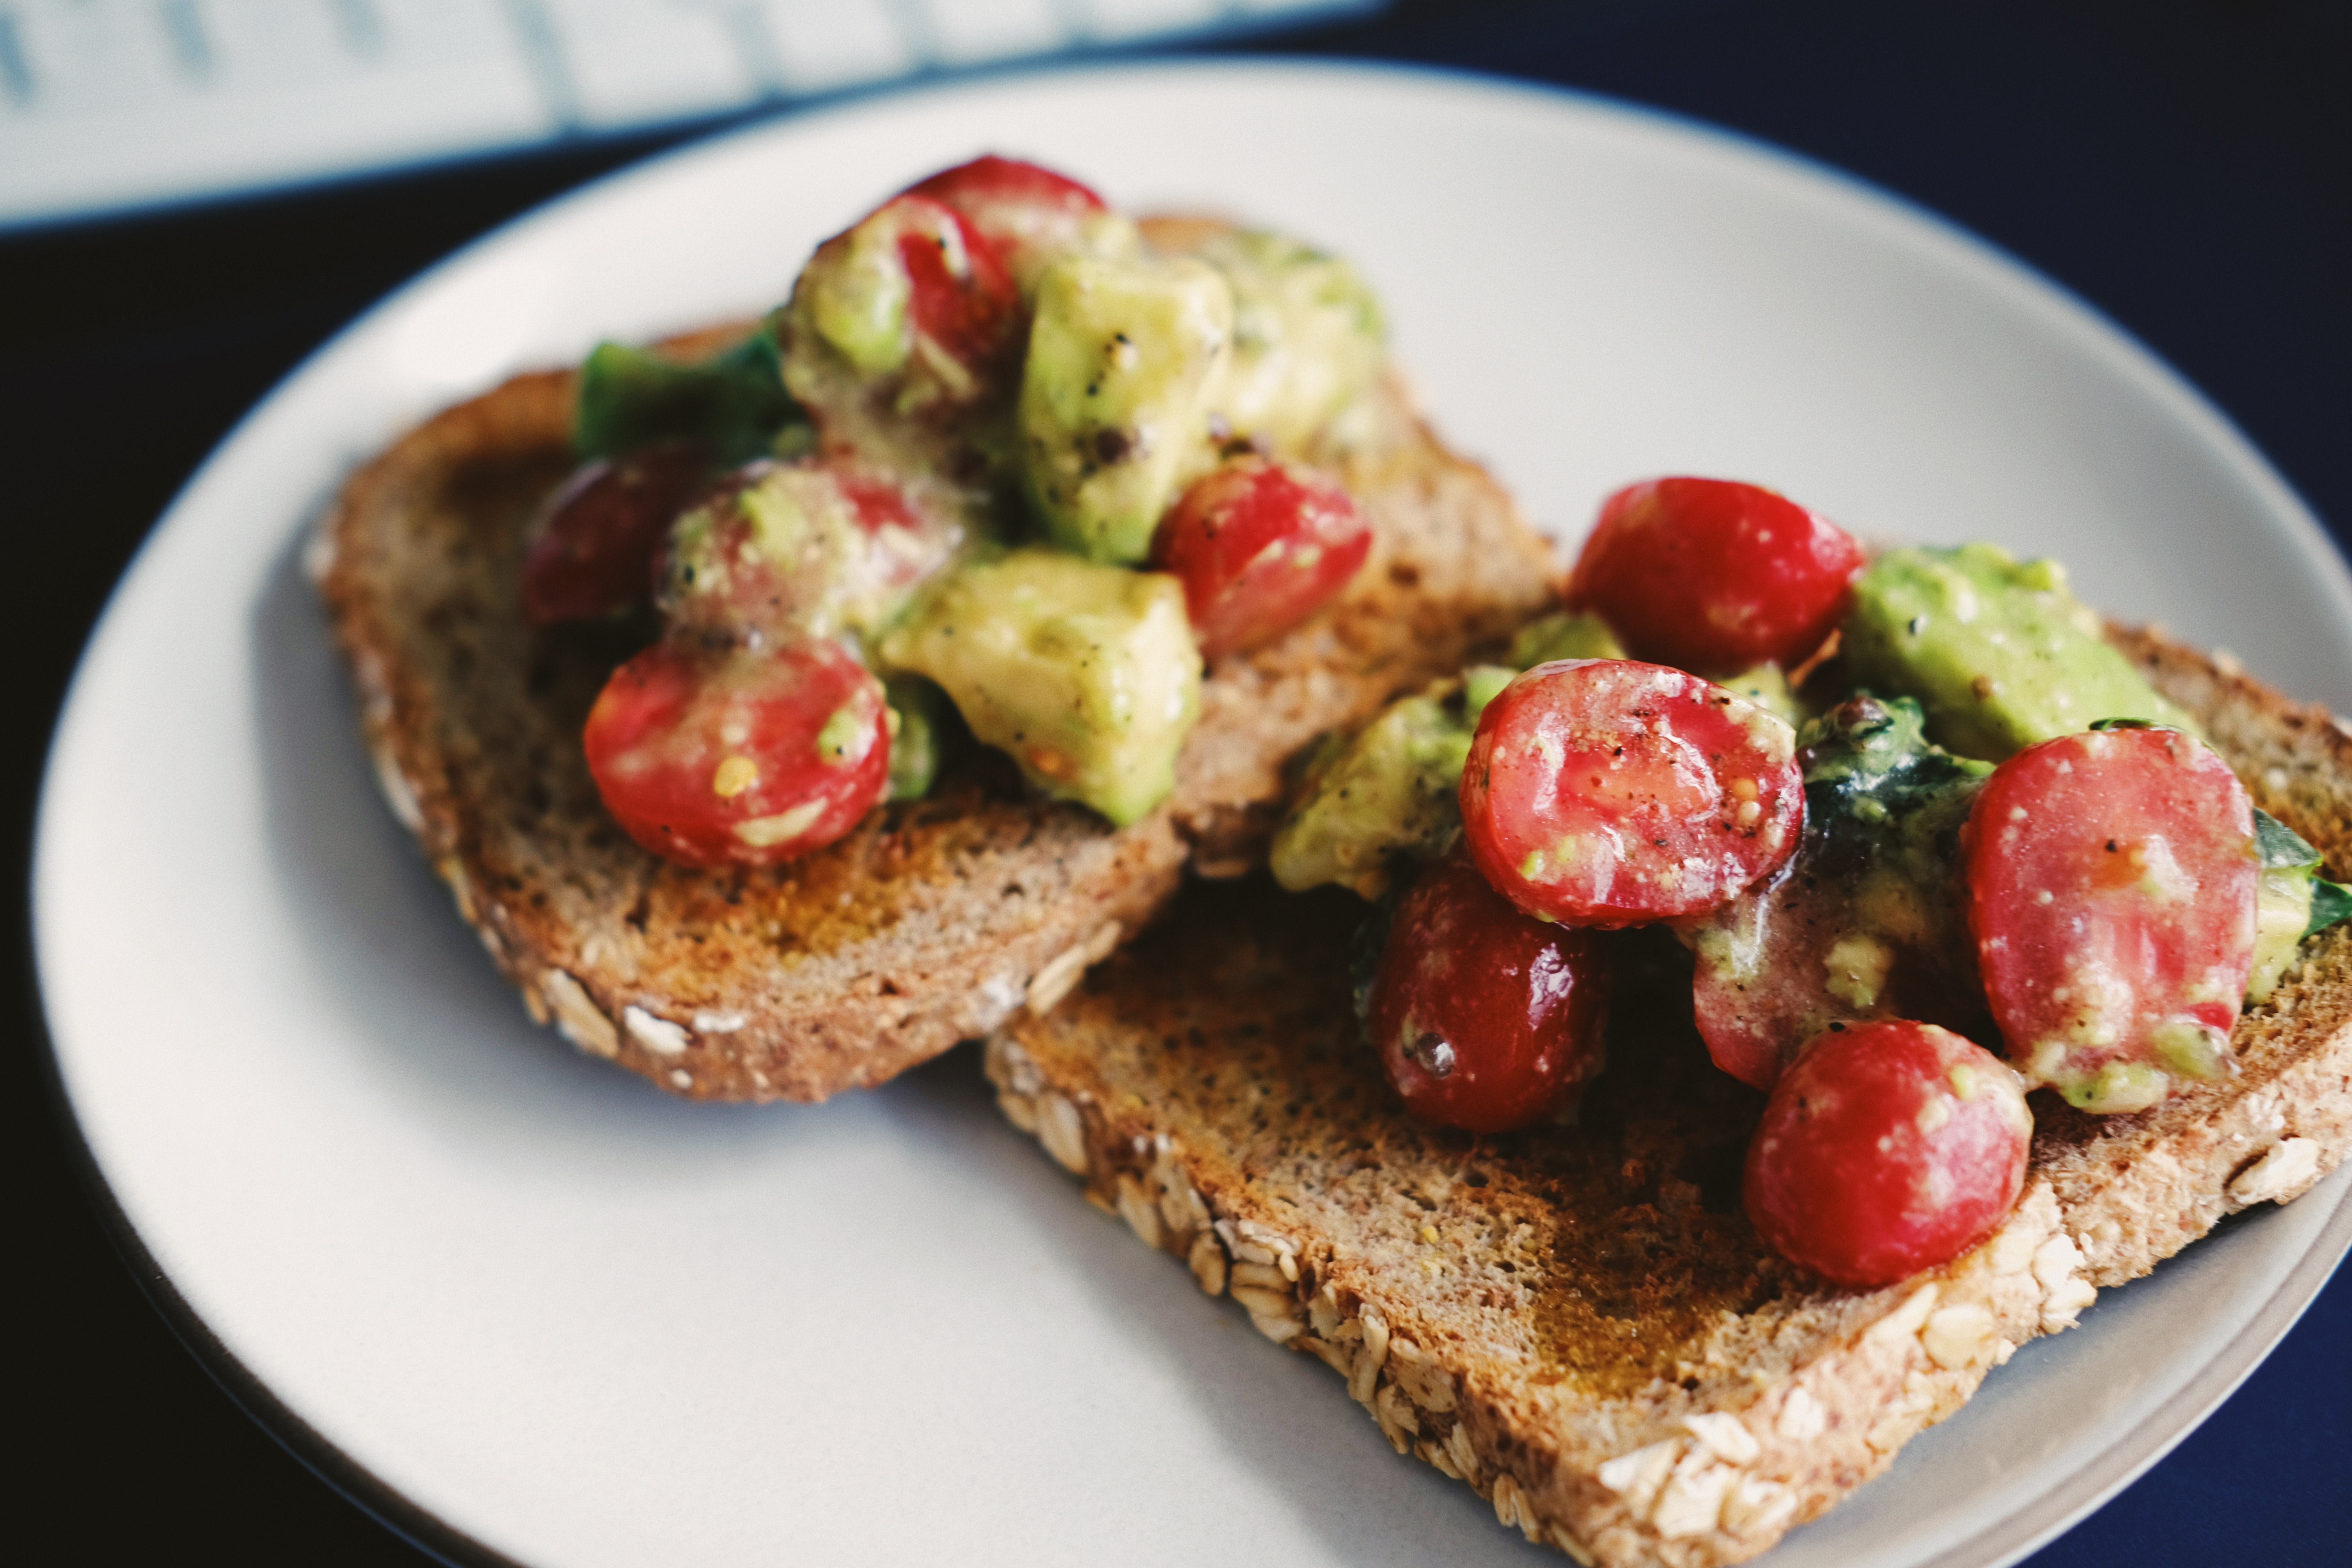 Two pieces of whole grain toast with tomatoes and avocados